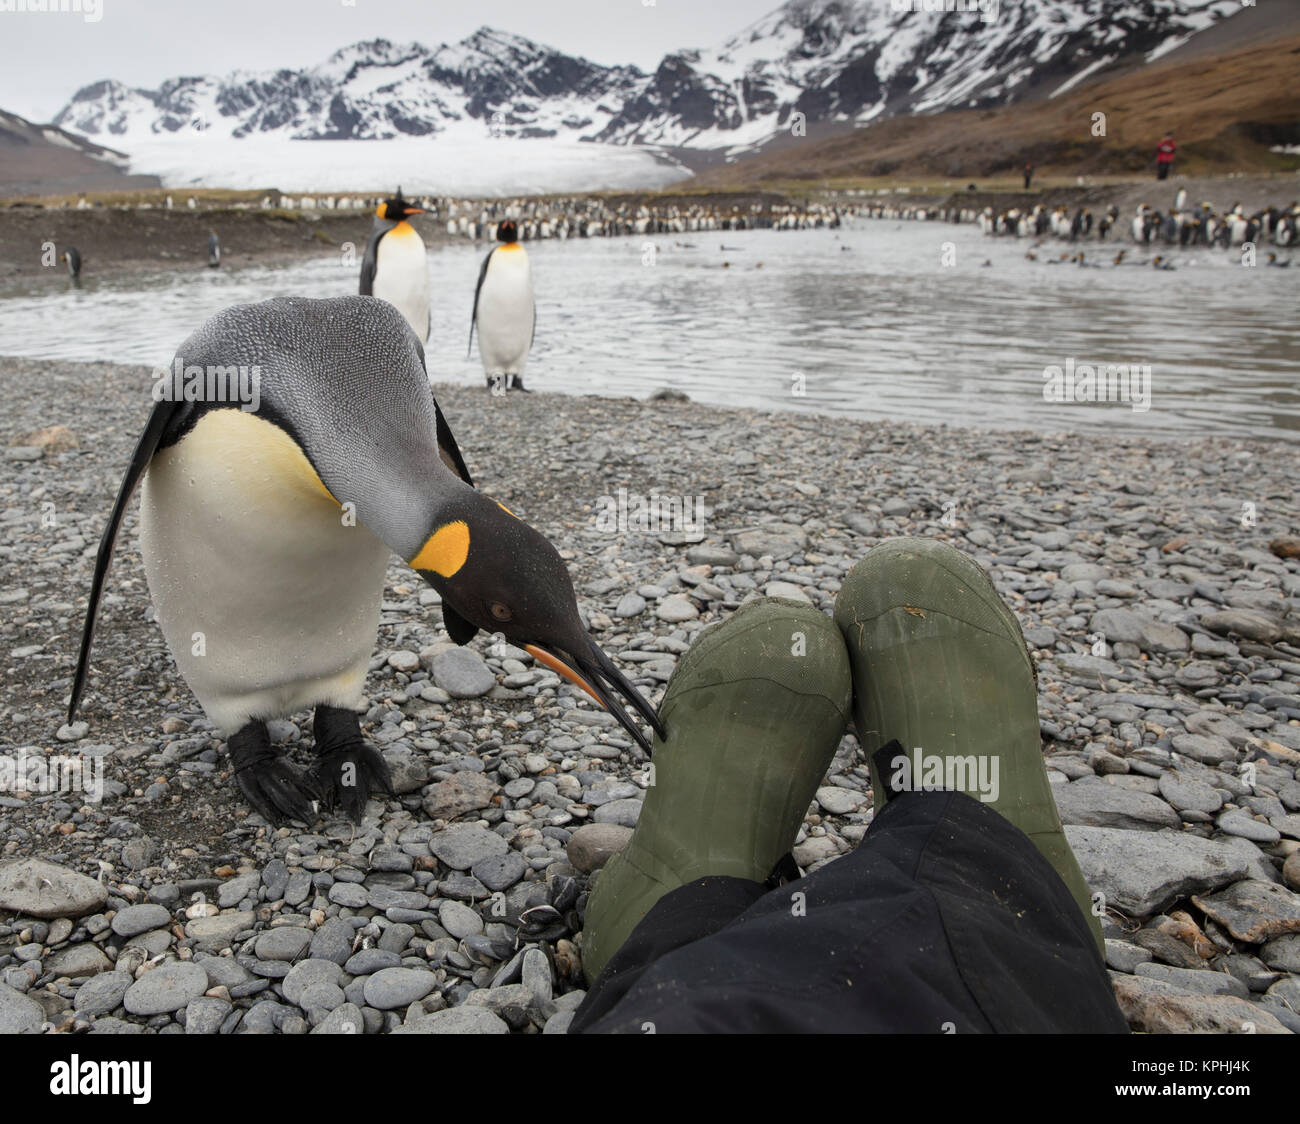 Fearless, curious king penguin checks out the photographer's boots at St Andrews Bay, South Georgia Island - Stock Image